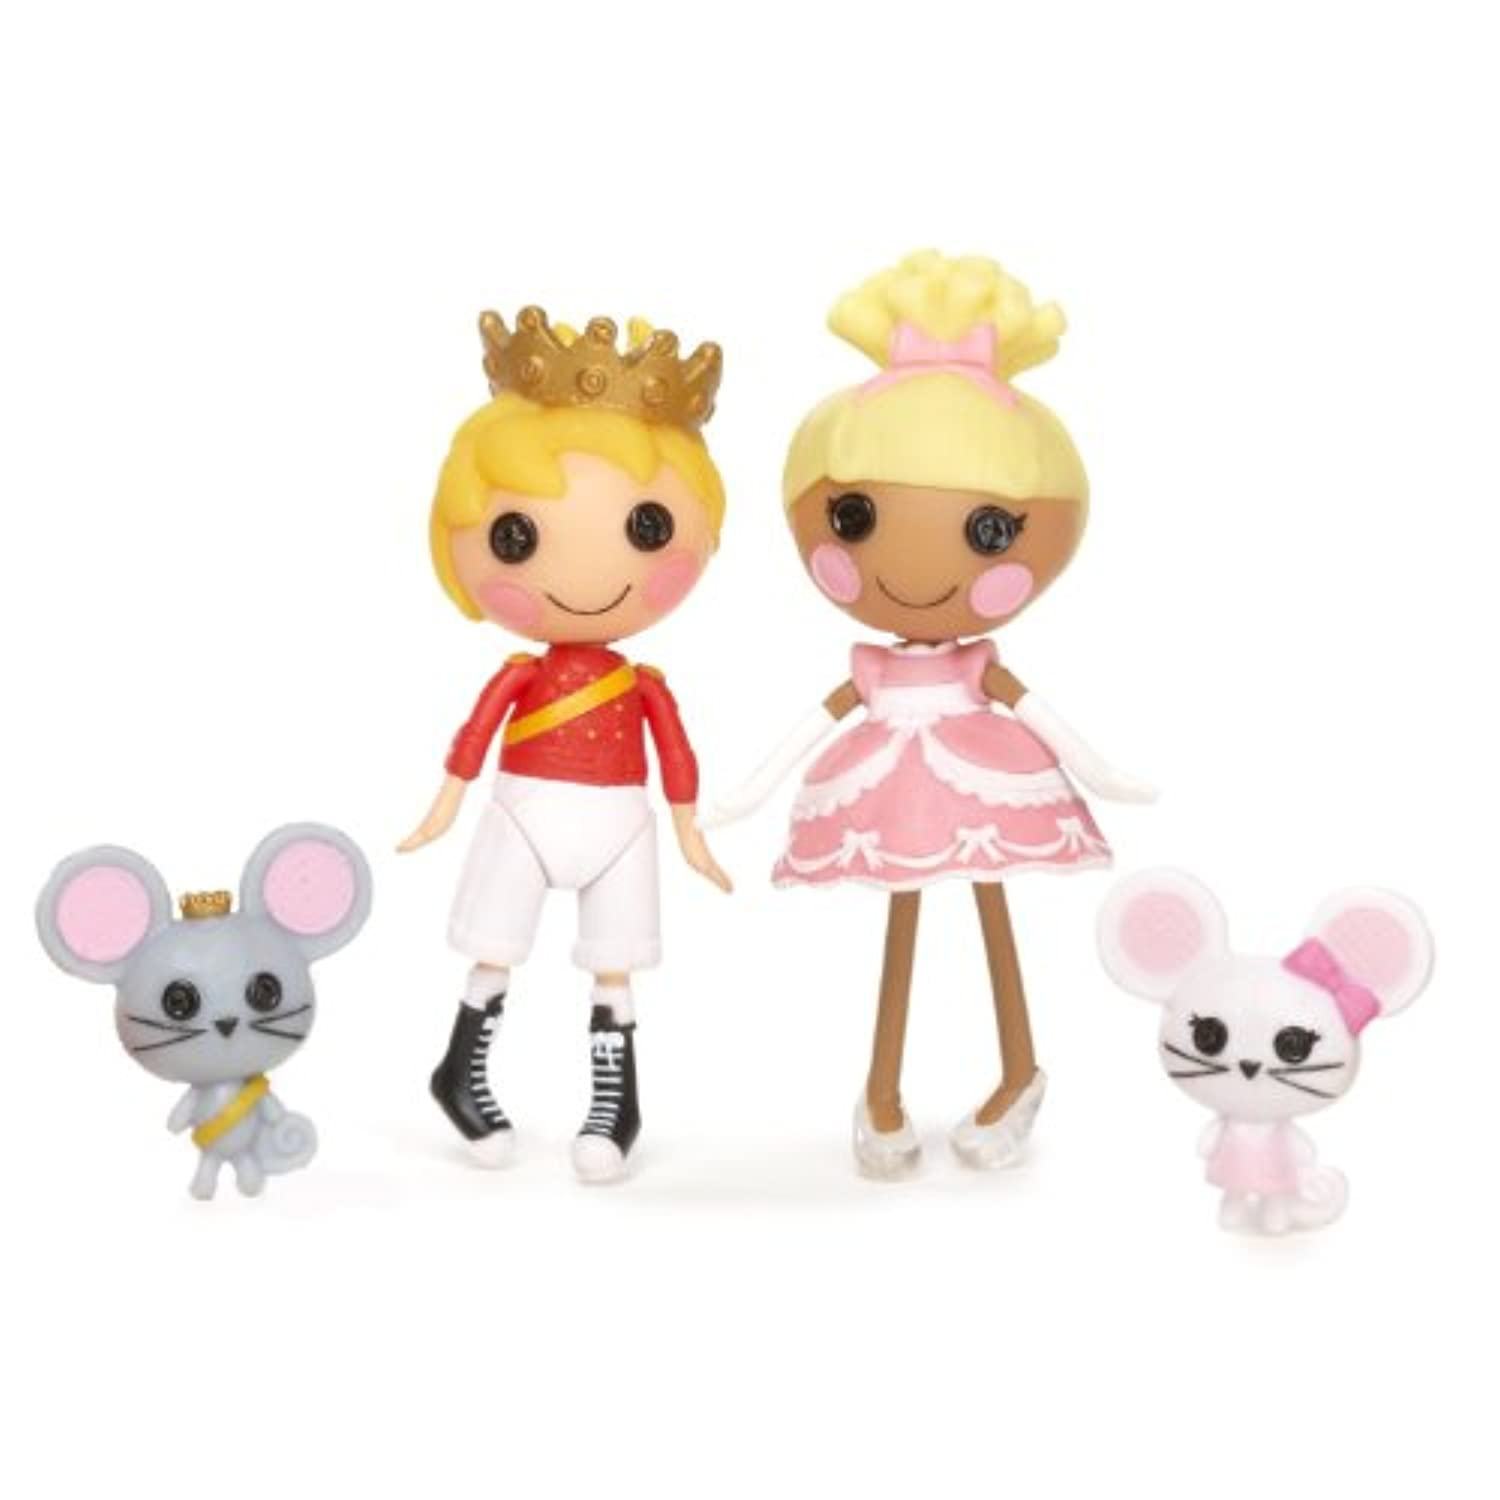 MINI LALALOOPSY DOLLS 2 PACK- Cinder Slippers and Prince Handsome -並行輸入品